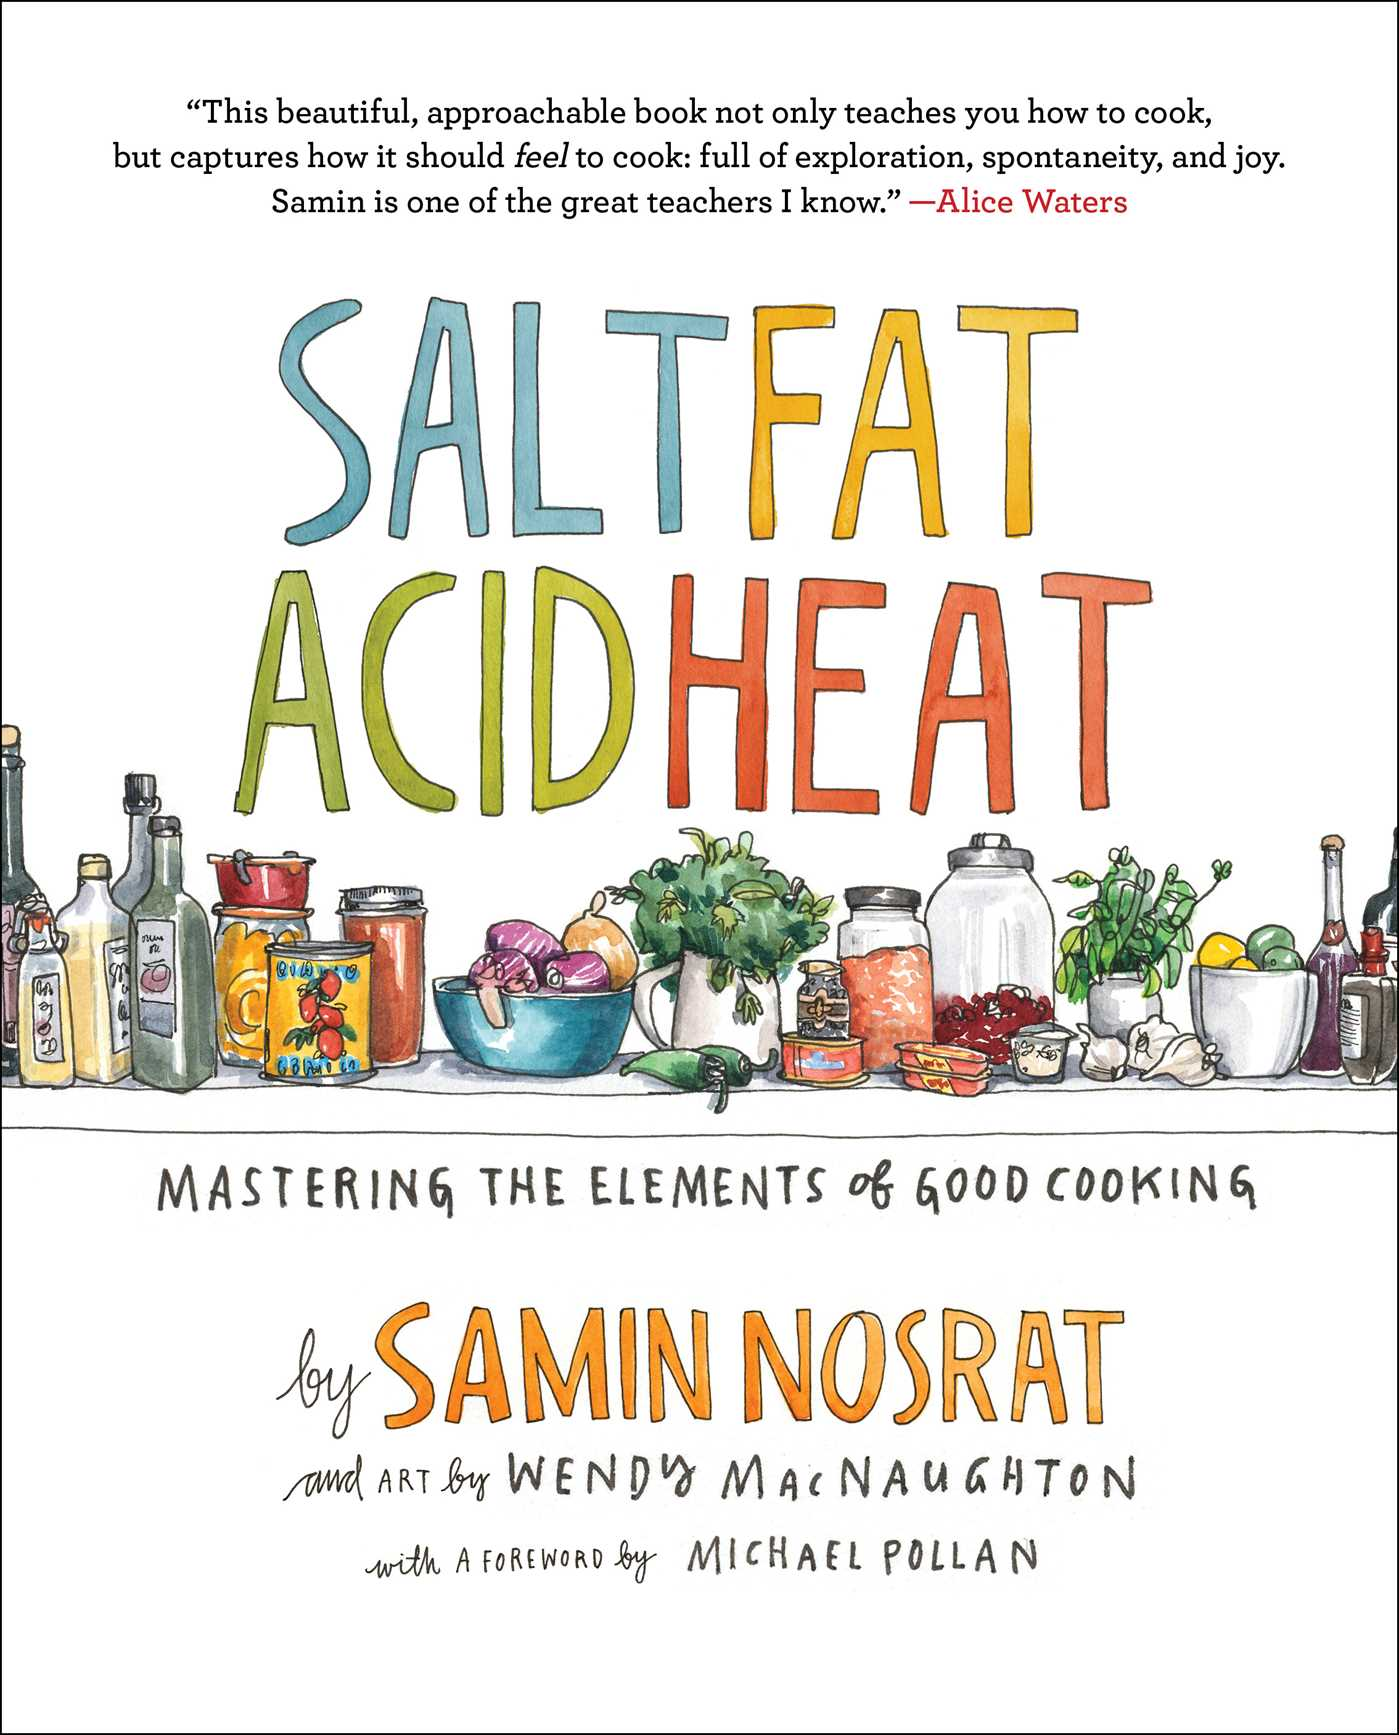 The cover of the book Salt, Fat, Acid, Heat